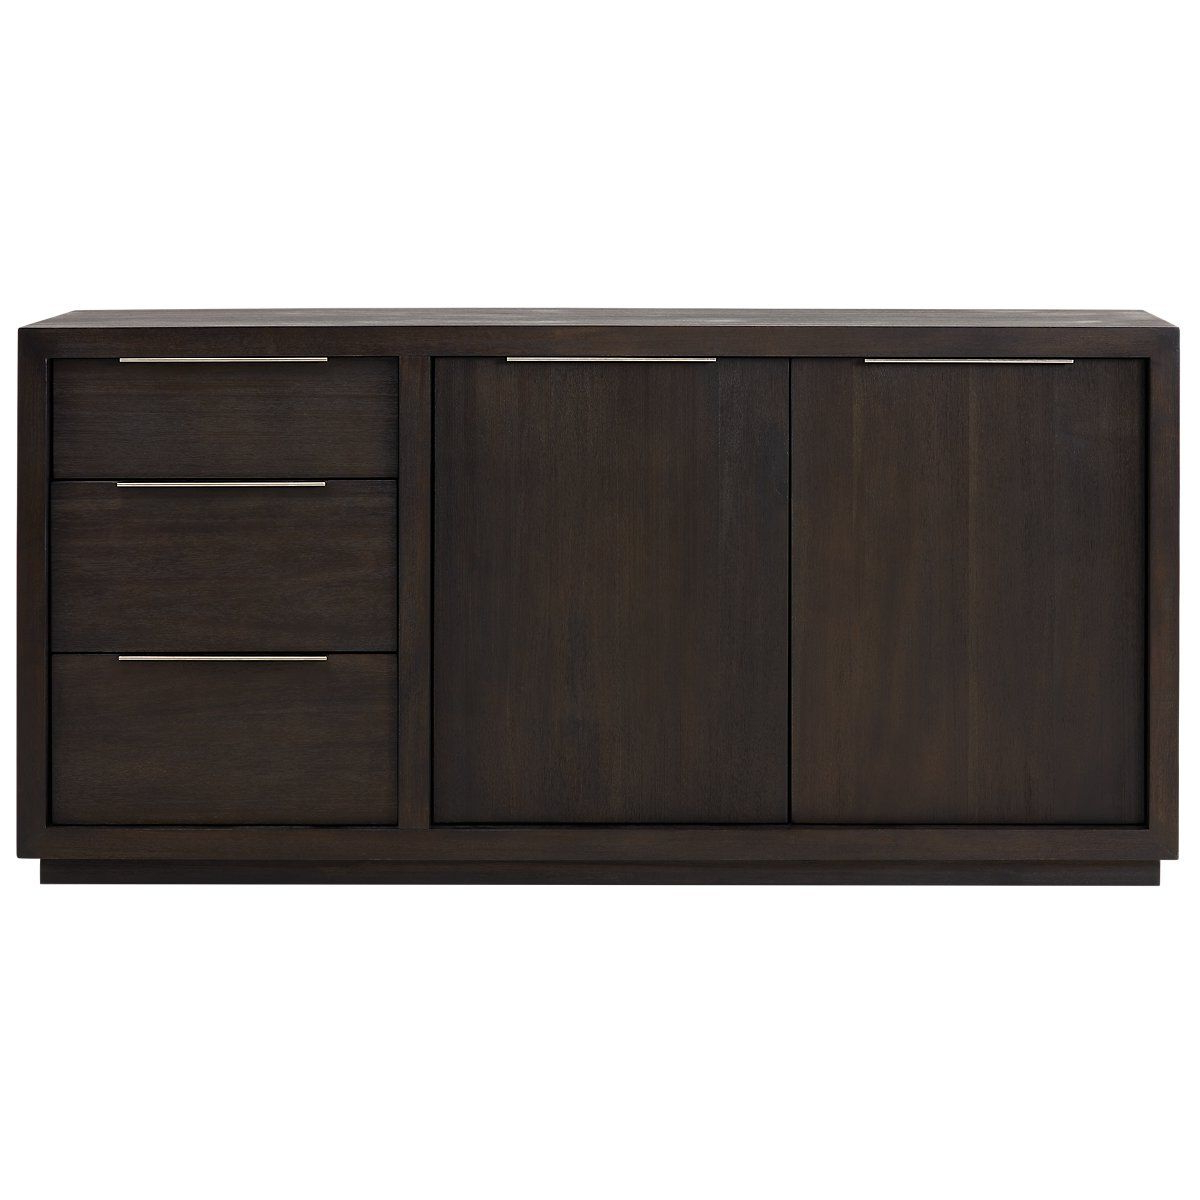 Candide Wood Credenzas With Regard To Preferred Candide Dark Gray Wood Credenza (Gallery 4 of 20)